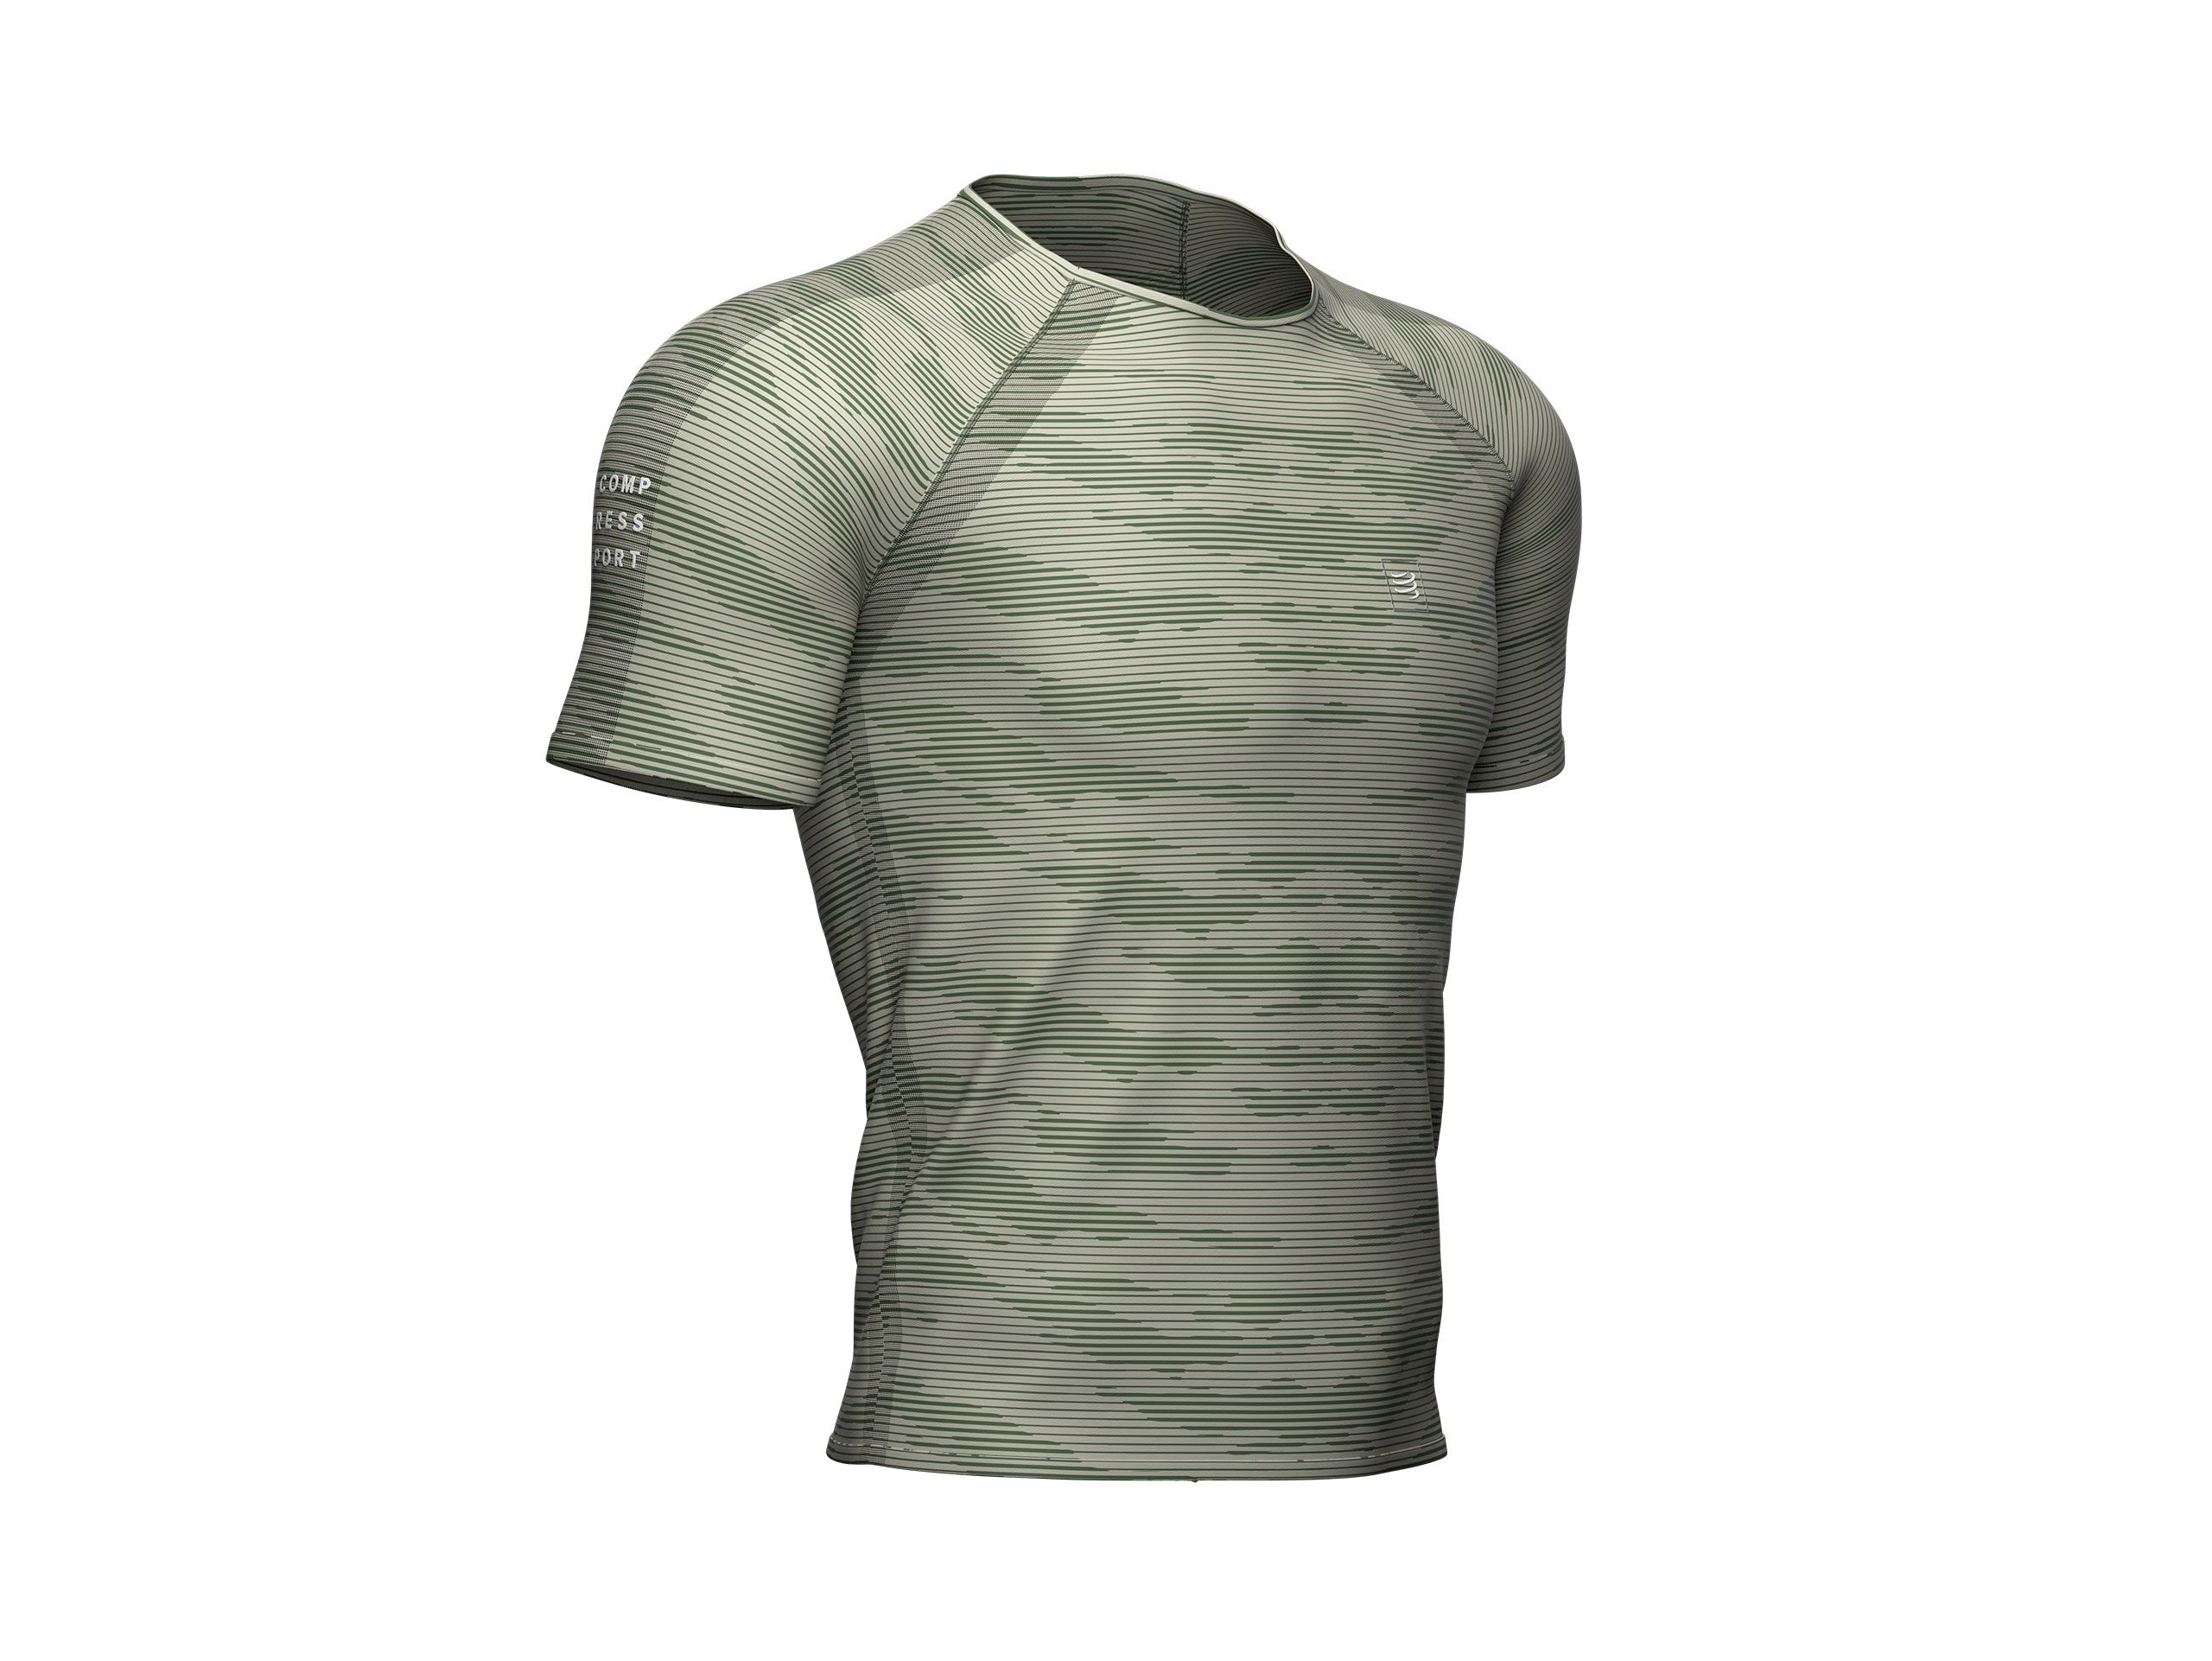 Training SS Tshirt Camo Stripe - Slate Green